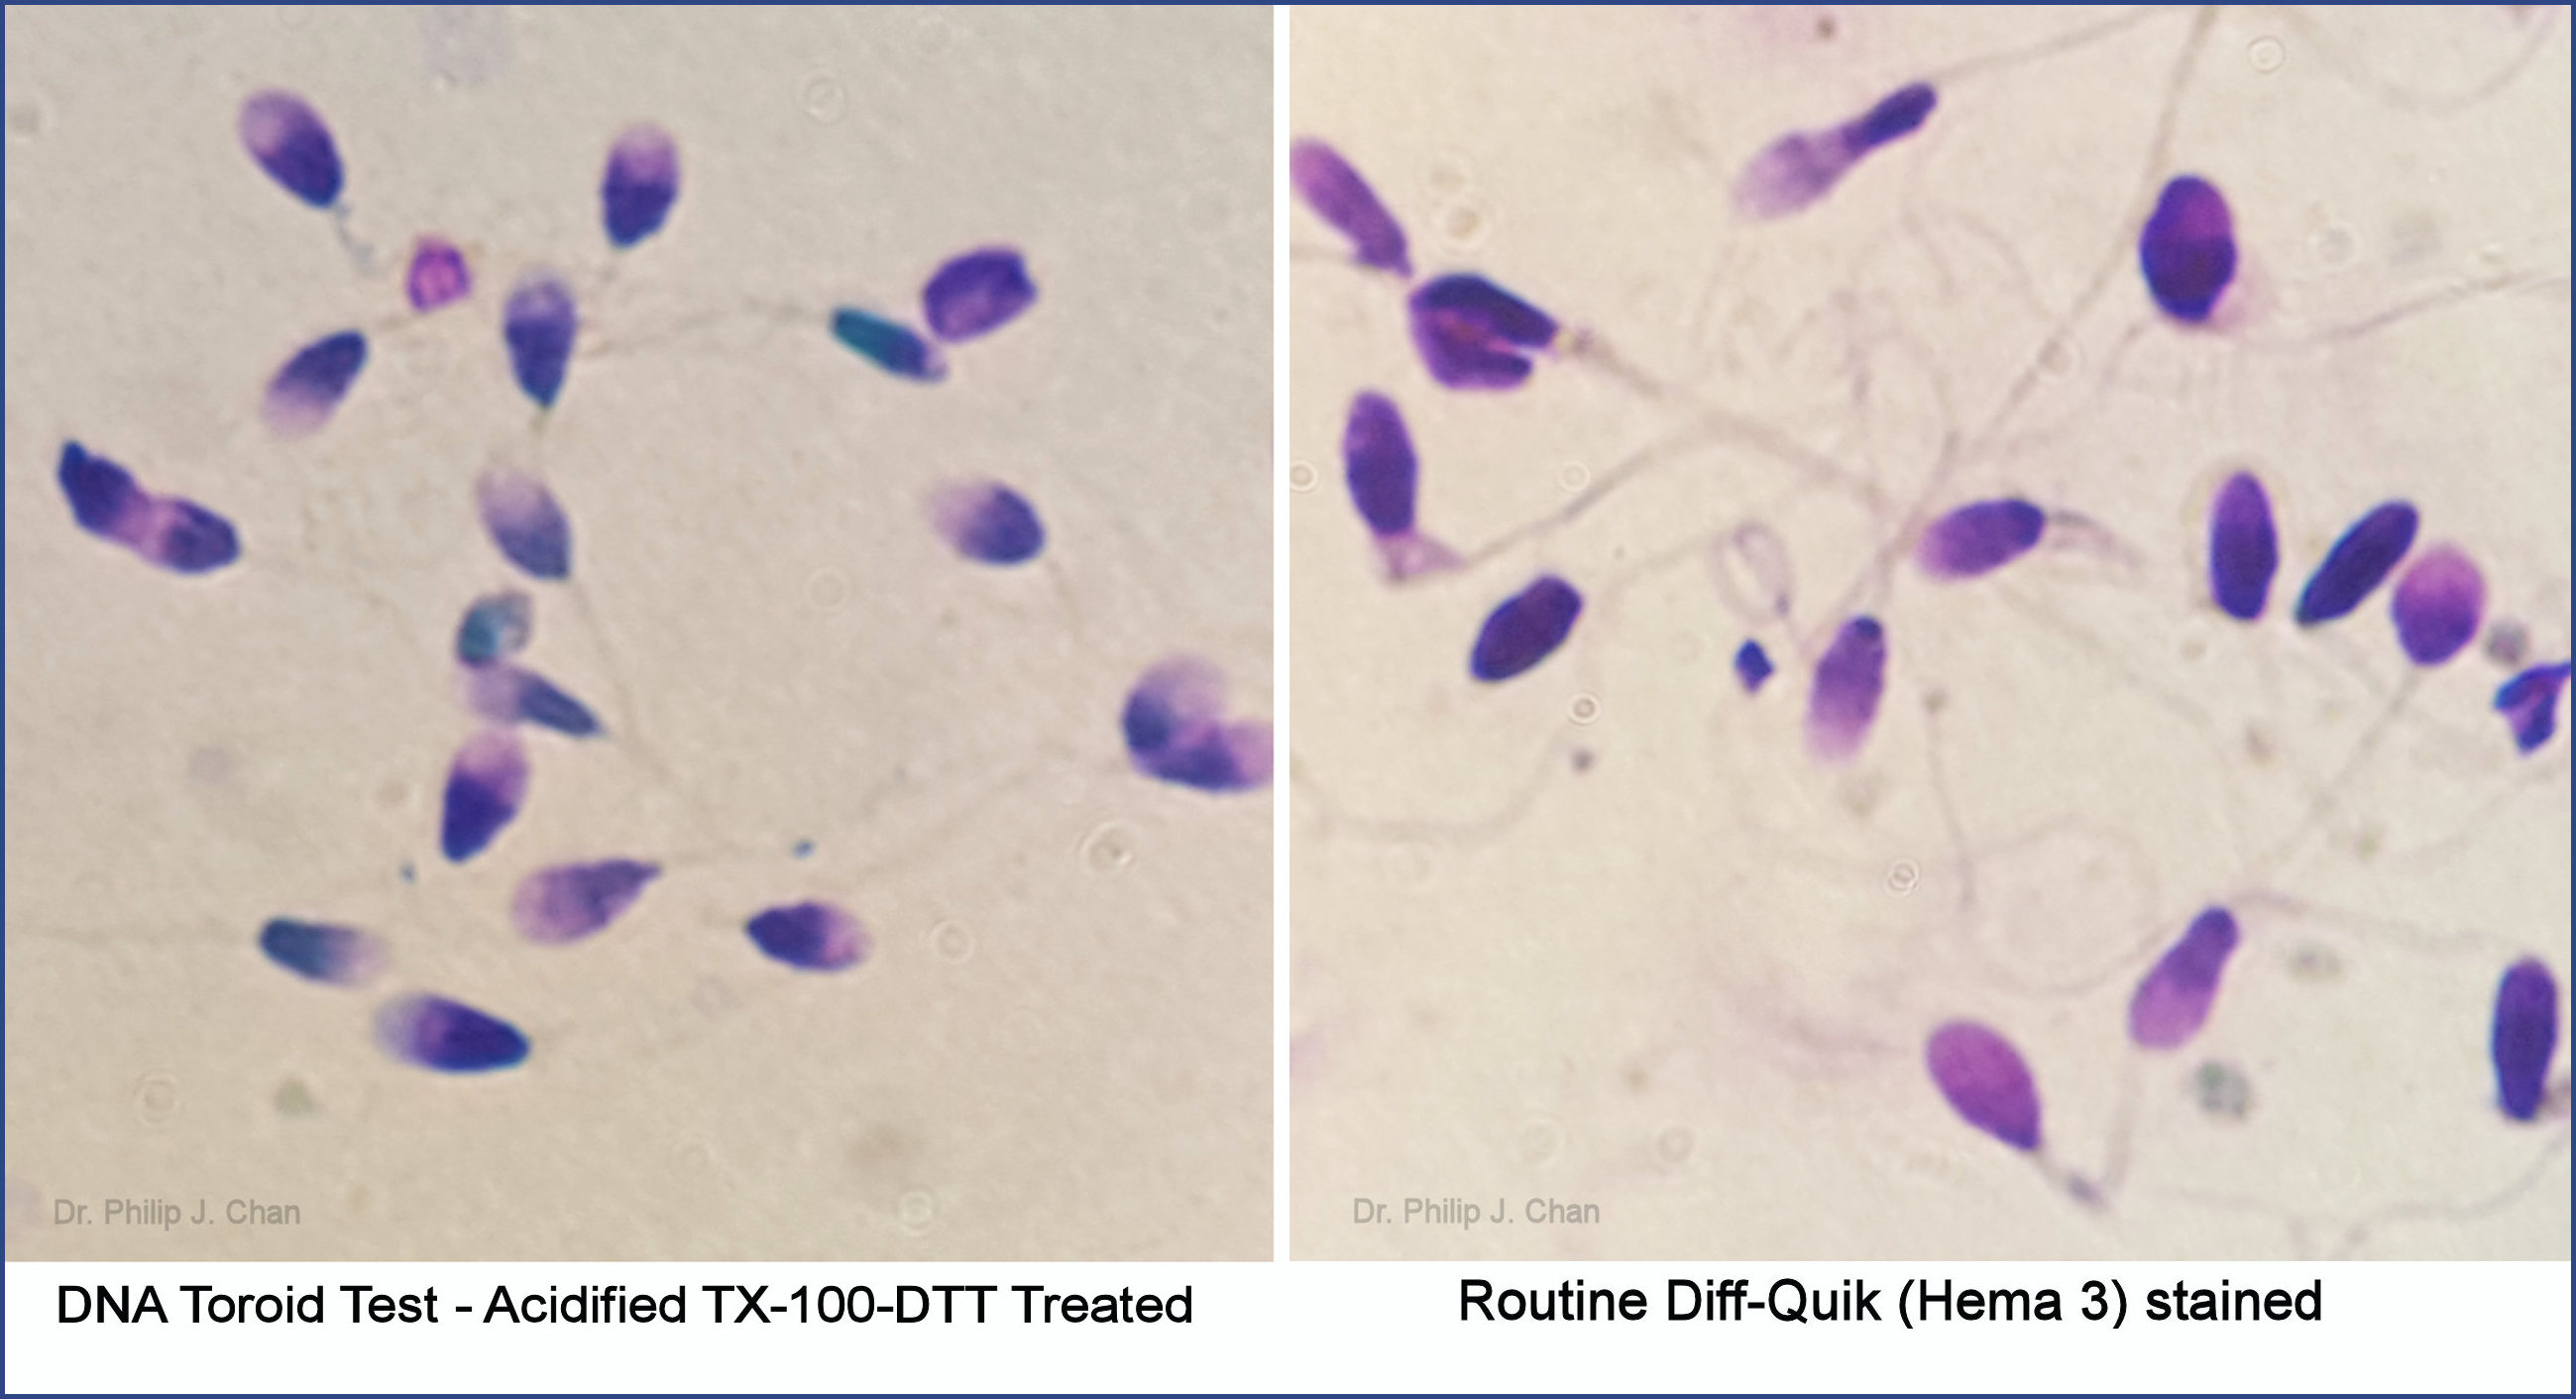 Washed sperm with resultant pregnancy. With pre-treatment, light versus dark (DNA damaged) sperm are easier to identify when compared with routine staining. 500x. (http://www.hindawi.com/journals/bmri/2015/780983/)